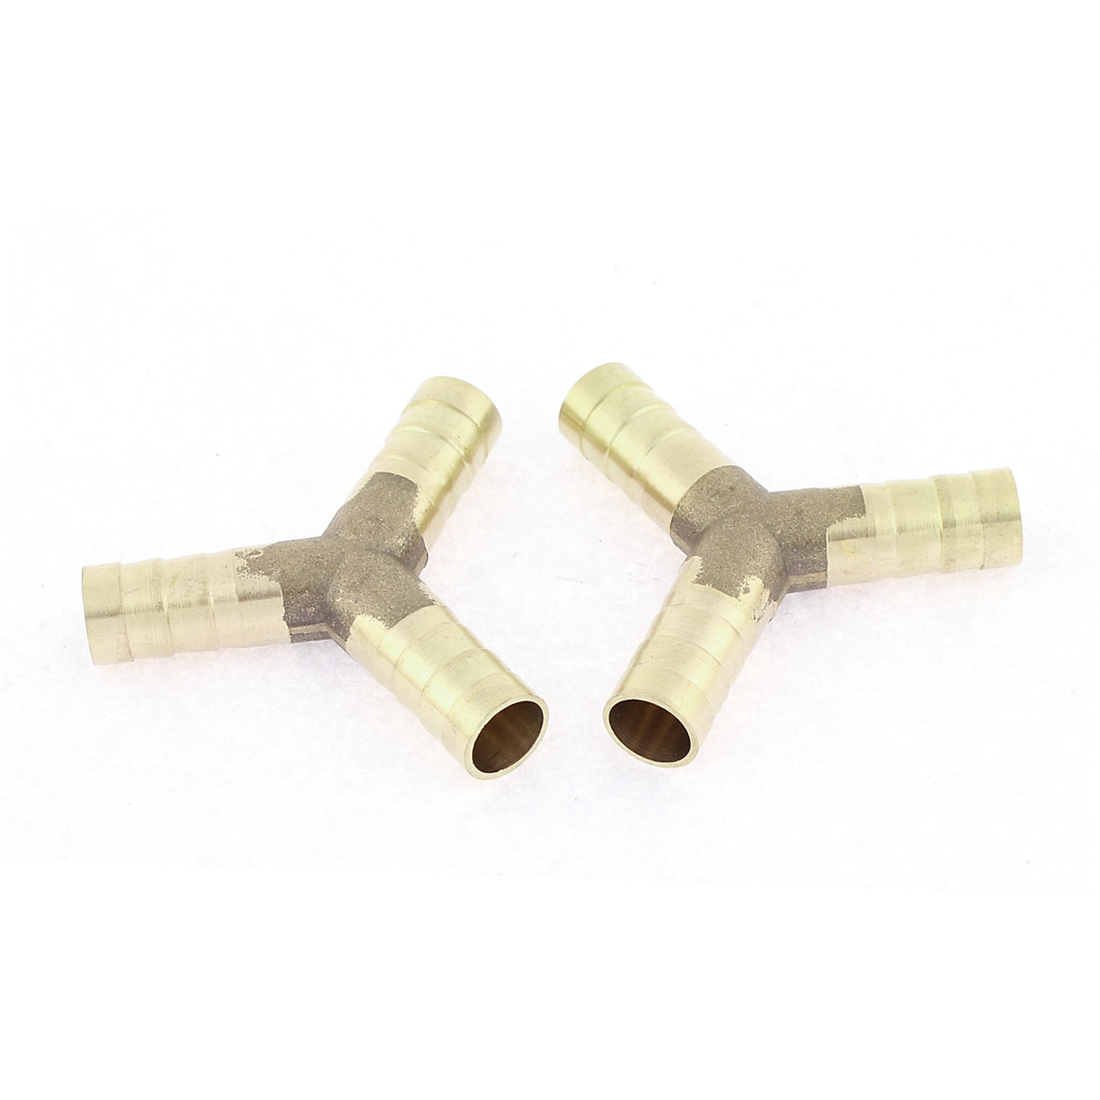 "Brass 3 Way Equal 3/8"" Hose Barb Air Gas Y Shaped Connector Gold Tone 2pcs"